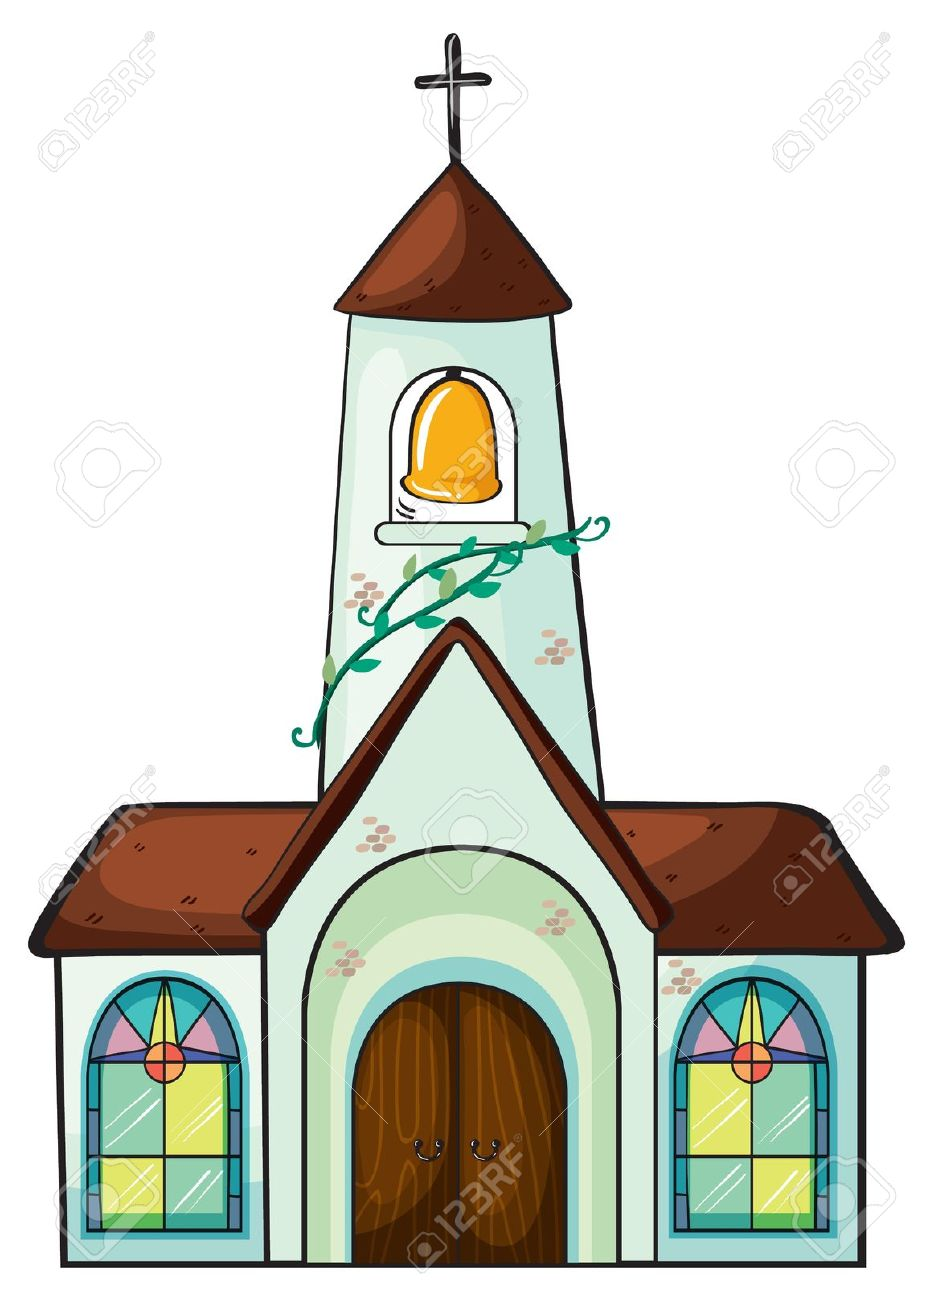 Illustration Of A Church On A White Background Royalty Free.